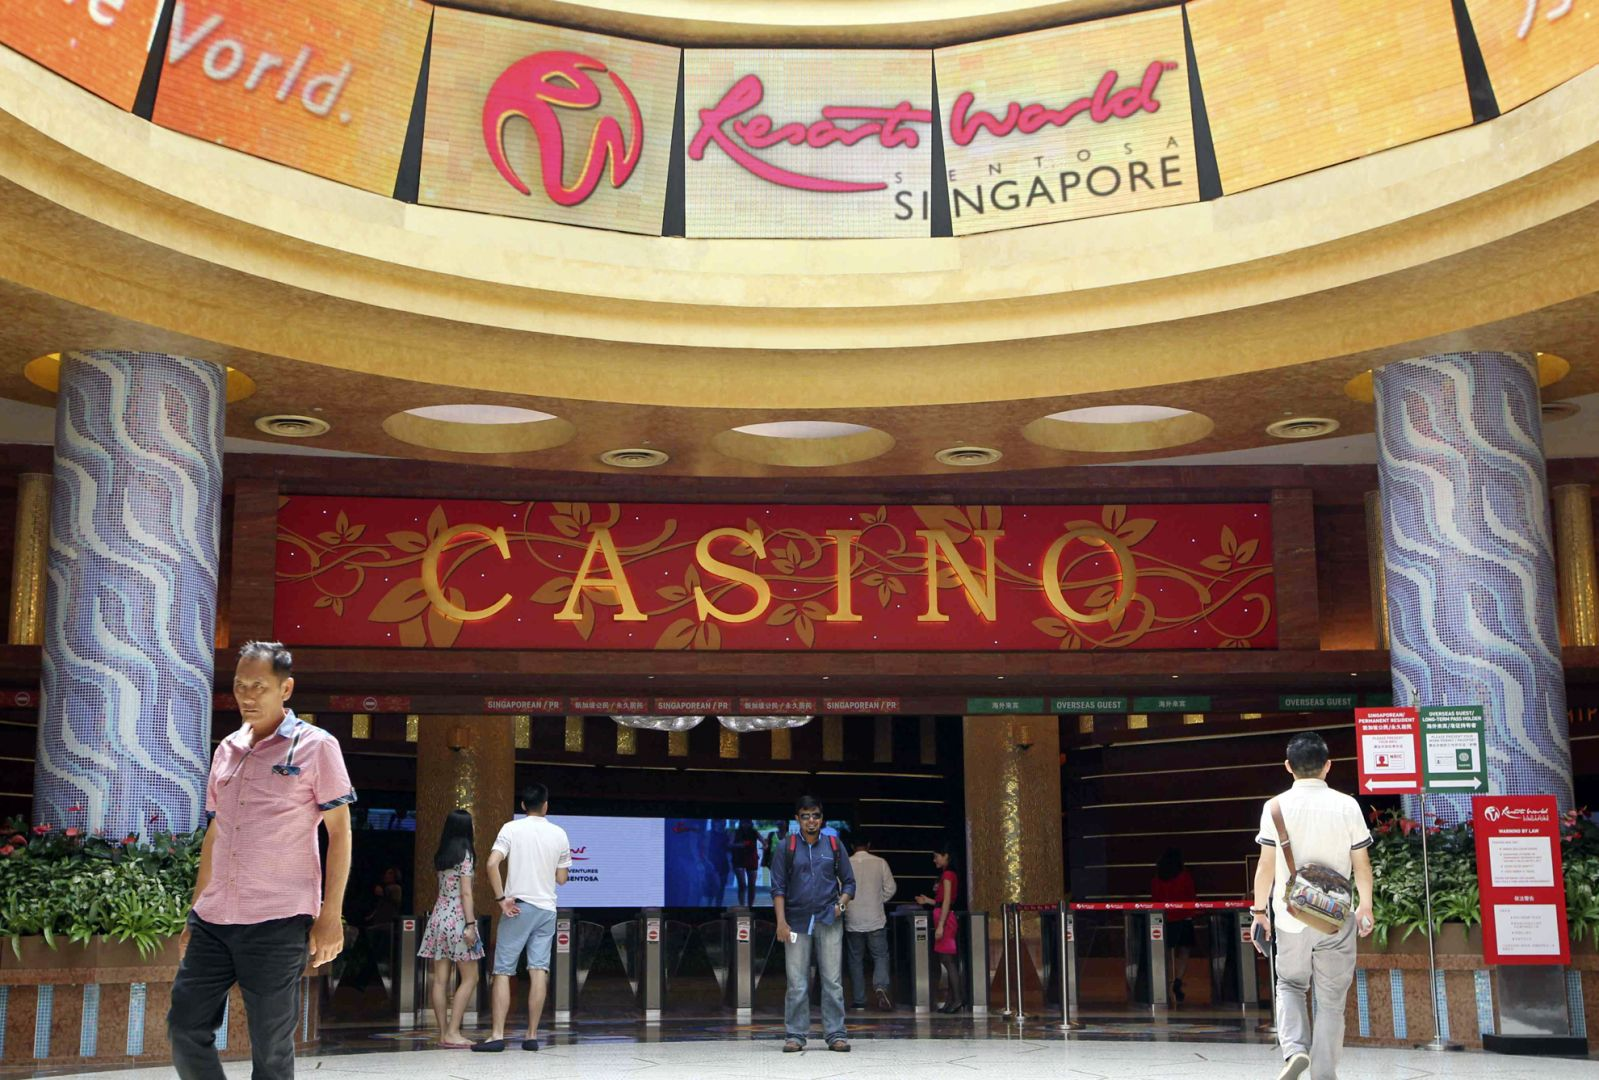 Singapore gaming revenue casinos